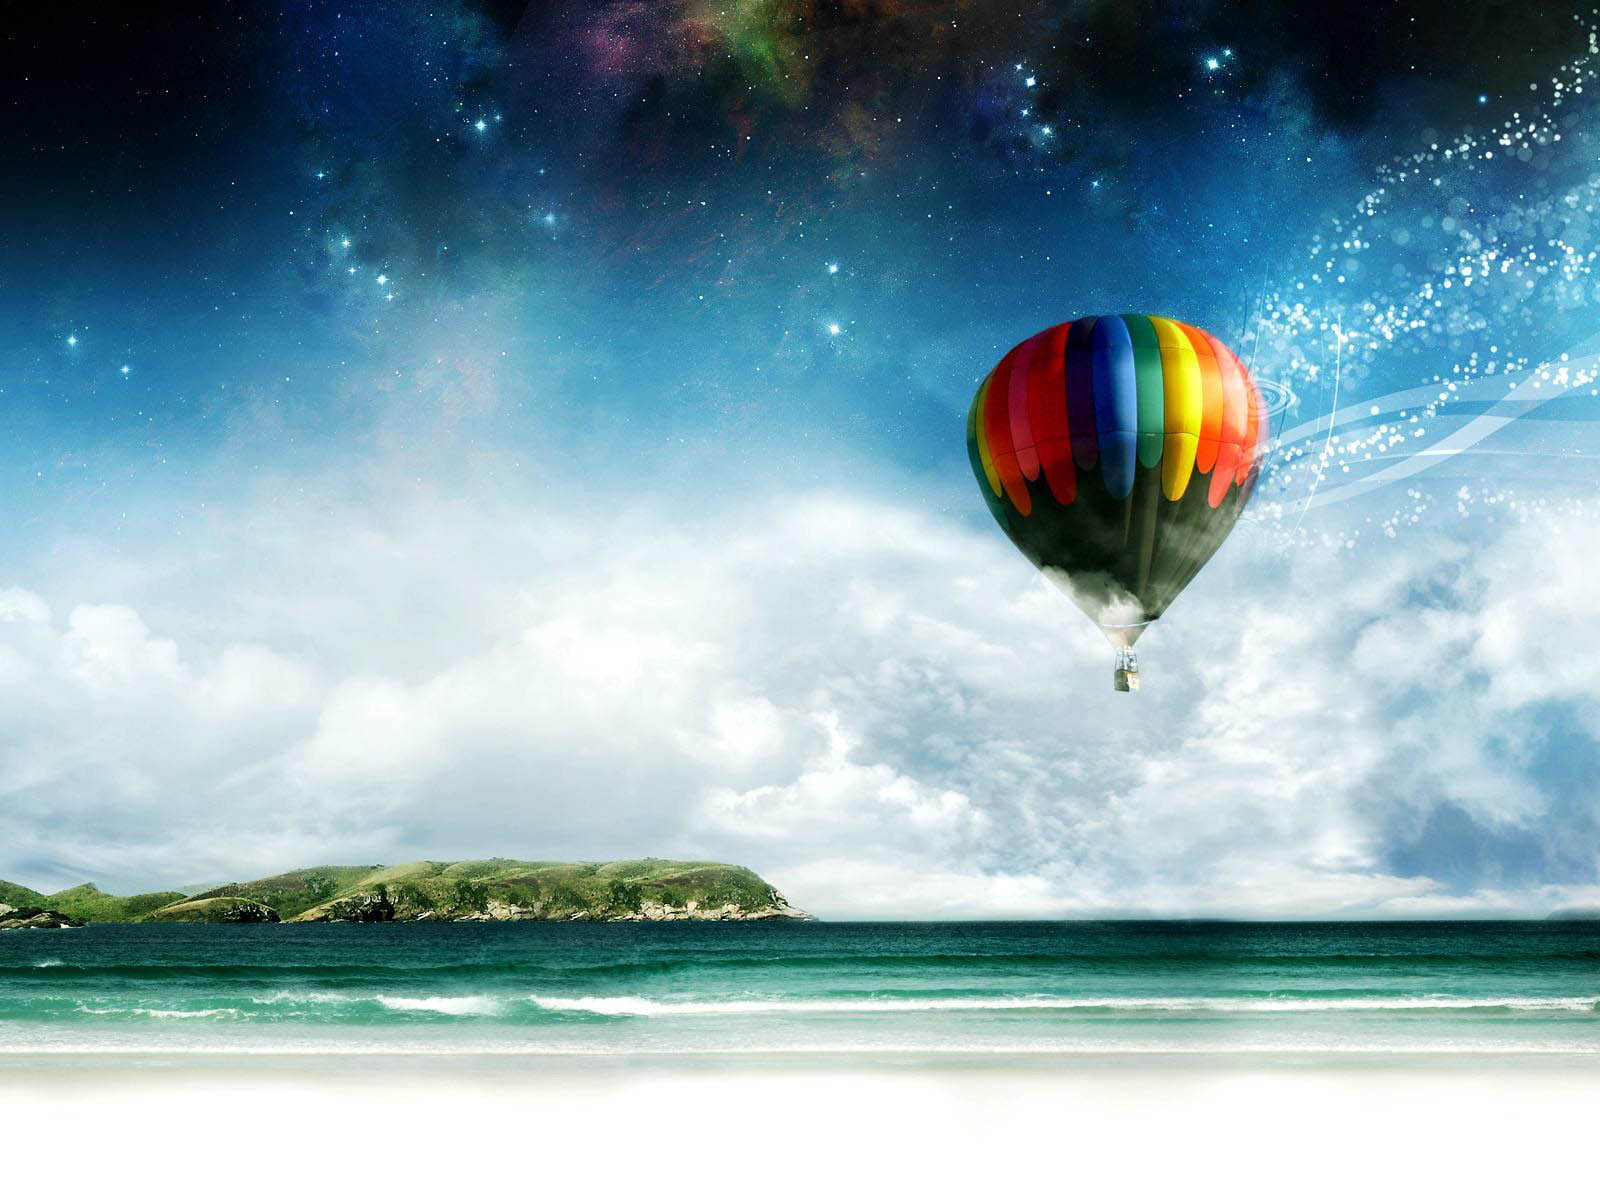 balloons wallpapers - photo #11